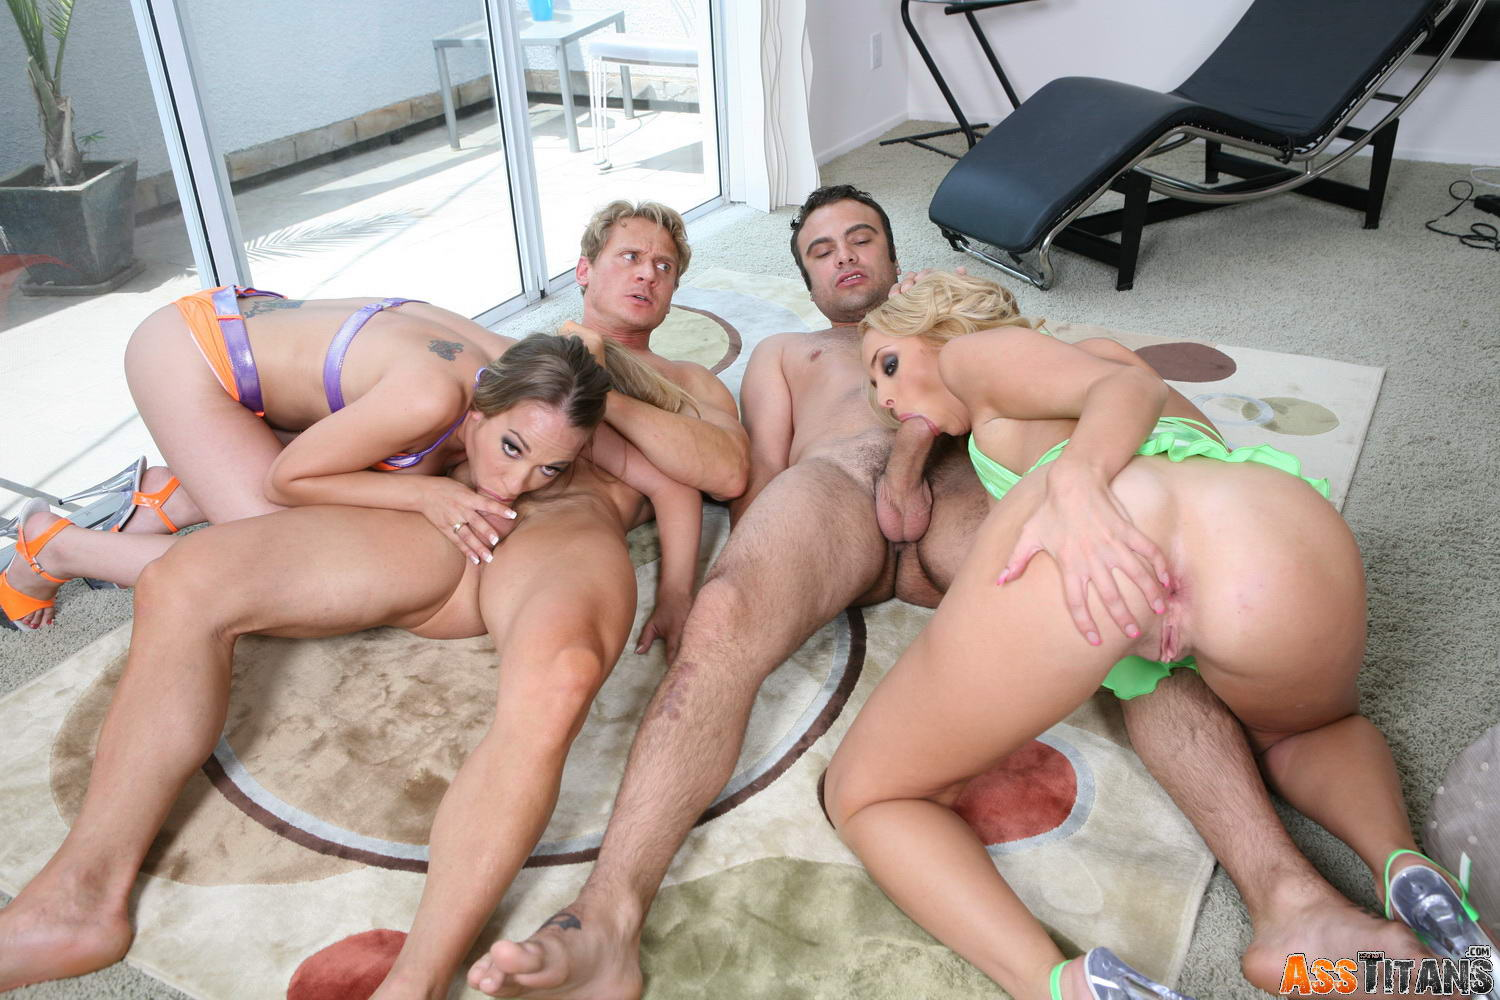 group doing anal penetration